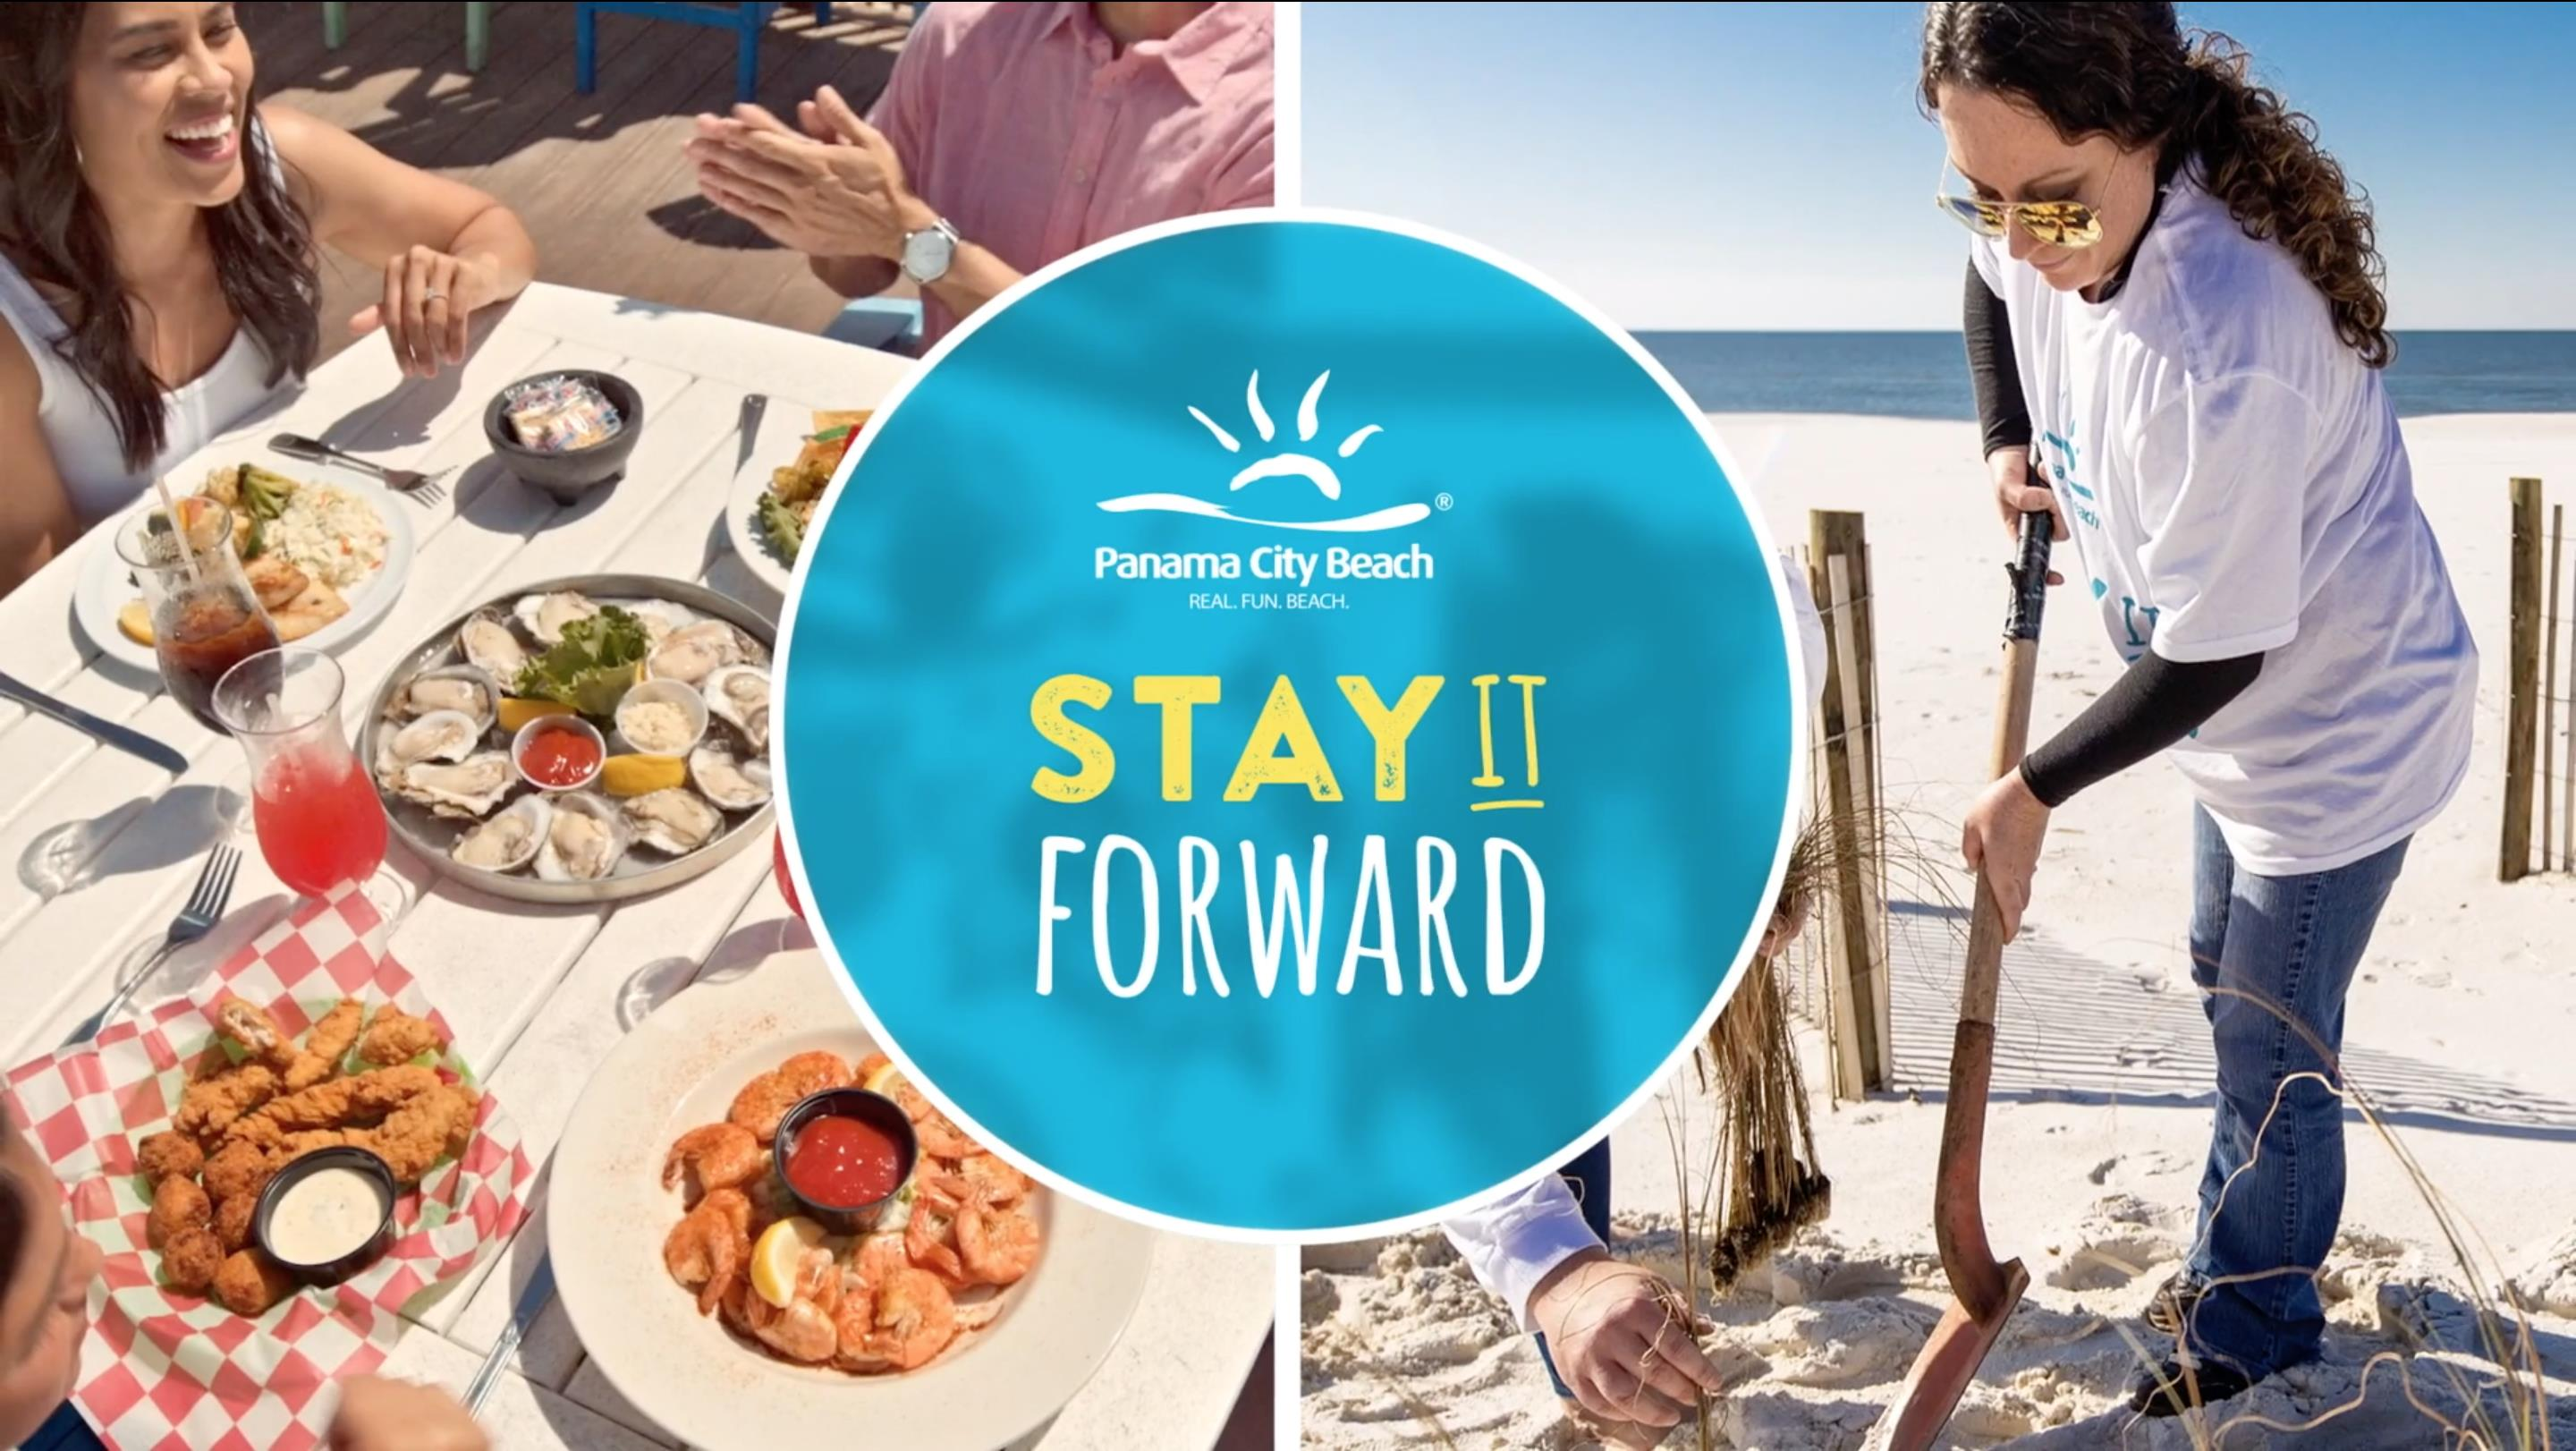 "Panama City Beach ""Stay it Forward"" Case Study"